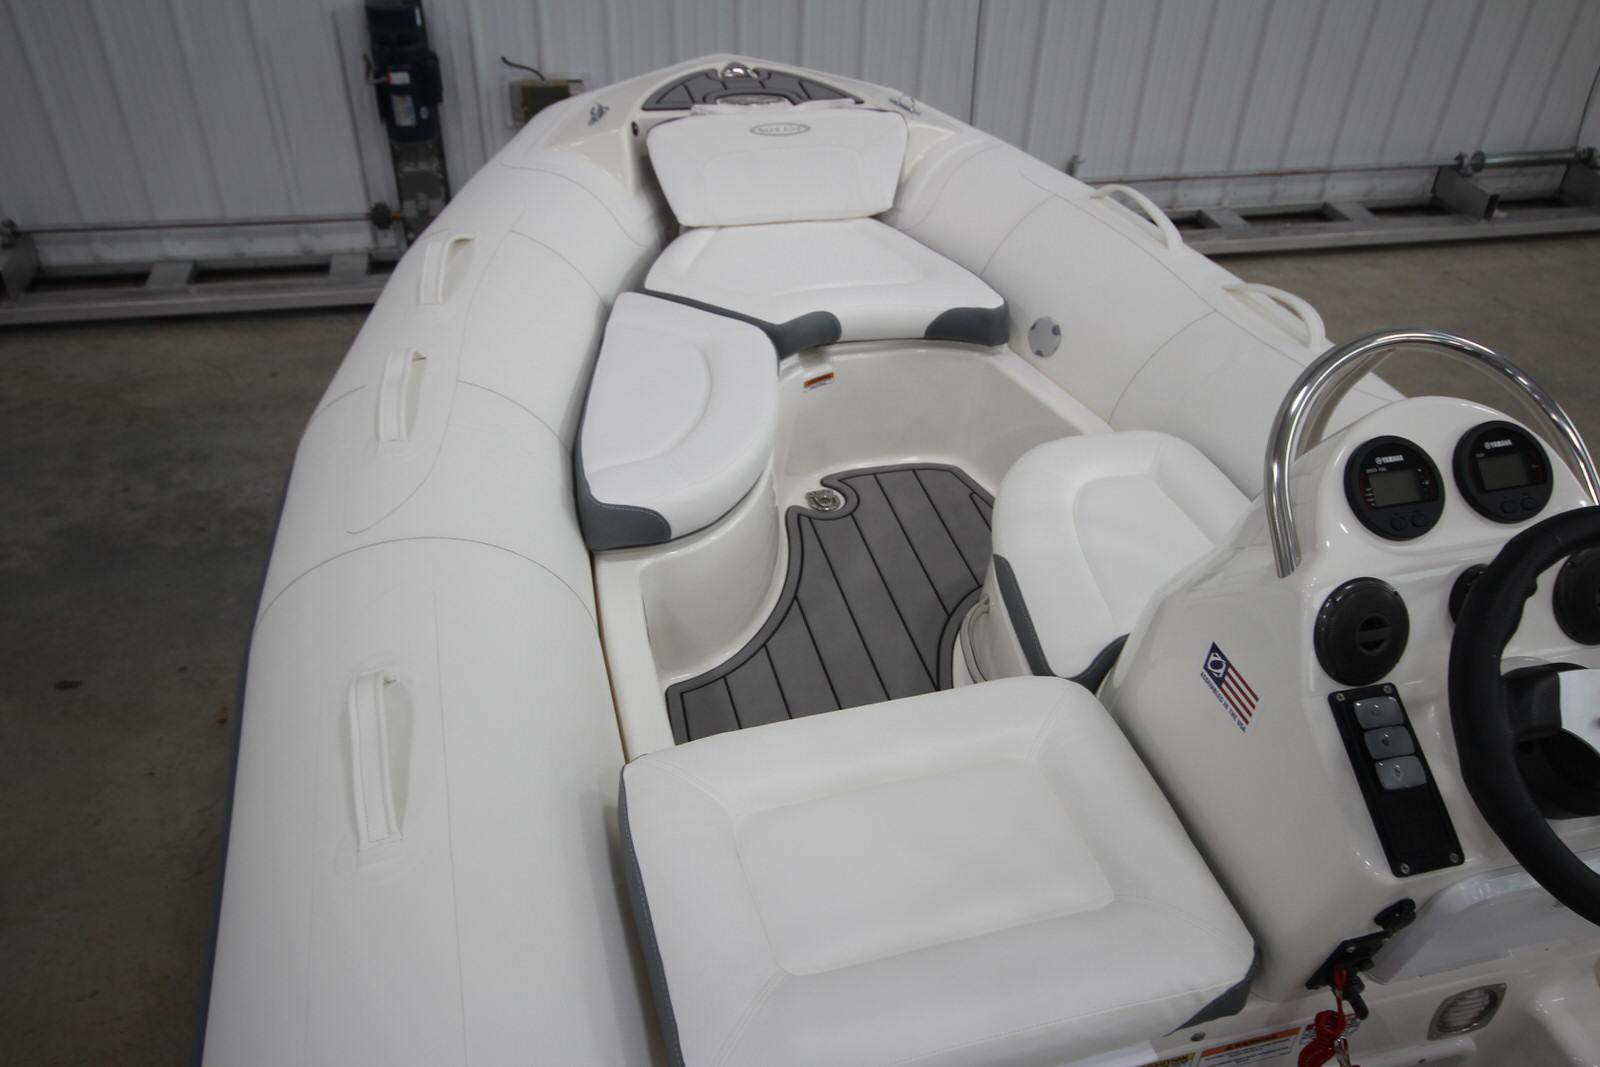 2022 Zodiac Yachtline 440 Deluxe NEO GL Edition 60hp On Order, Image 16